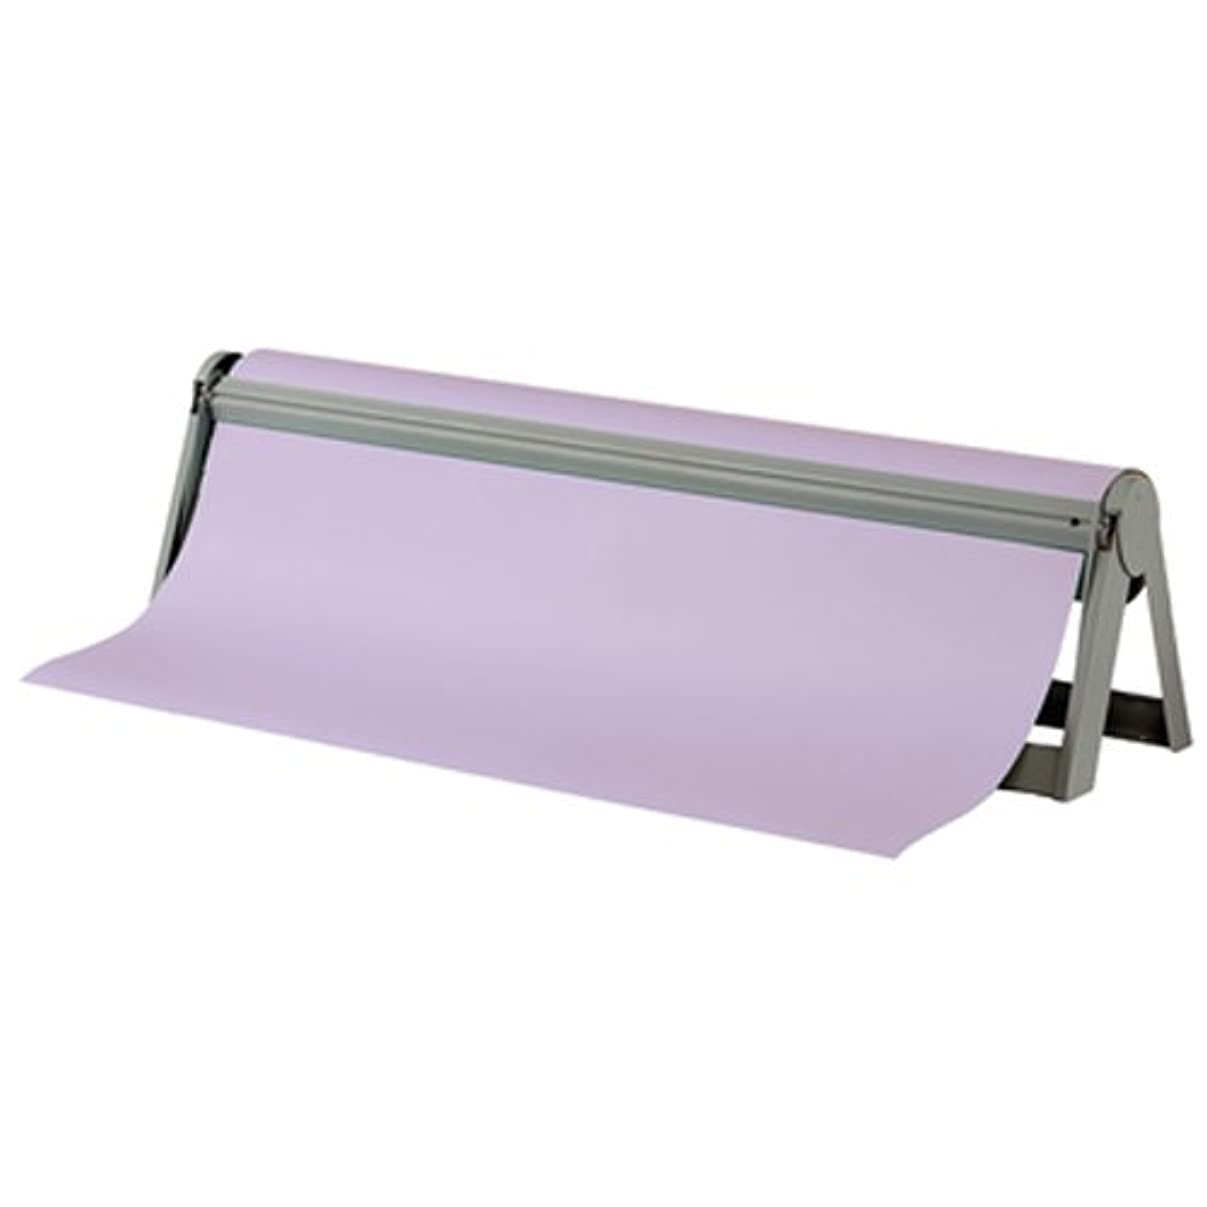 The Gift Wrap Company Heavy Duty Wrapping Paper Roll Cutter g16828529673490